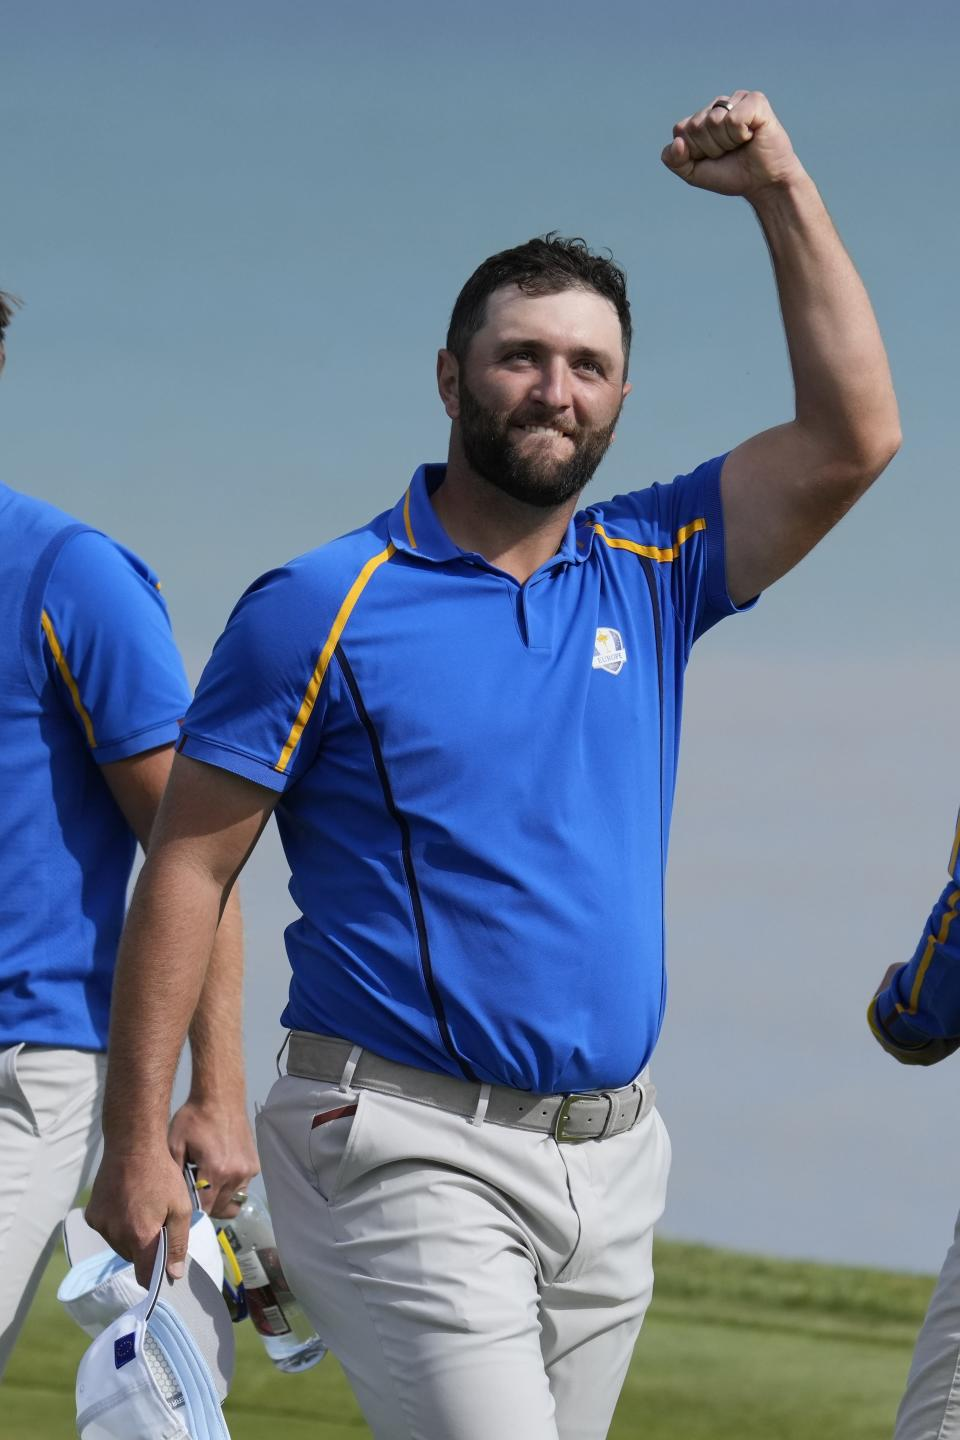 Team Europe's Jon Rahm reacts after winning their foursome match the Ryder Cup at the Whistling Straits Golf Course Friday, Sept. 24, 2021, in Sheboygan, Wis. (AP Photo/Ashley Landis)